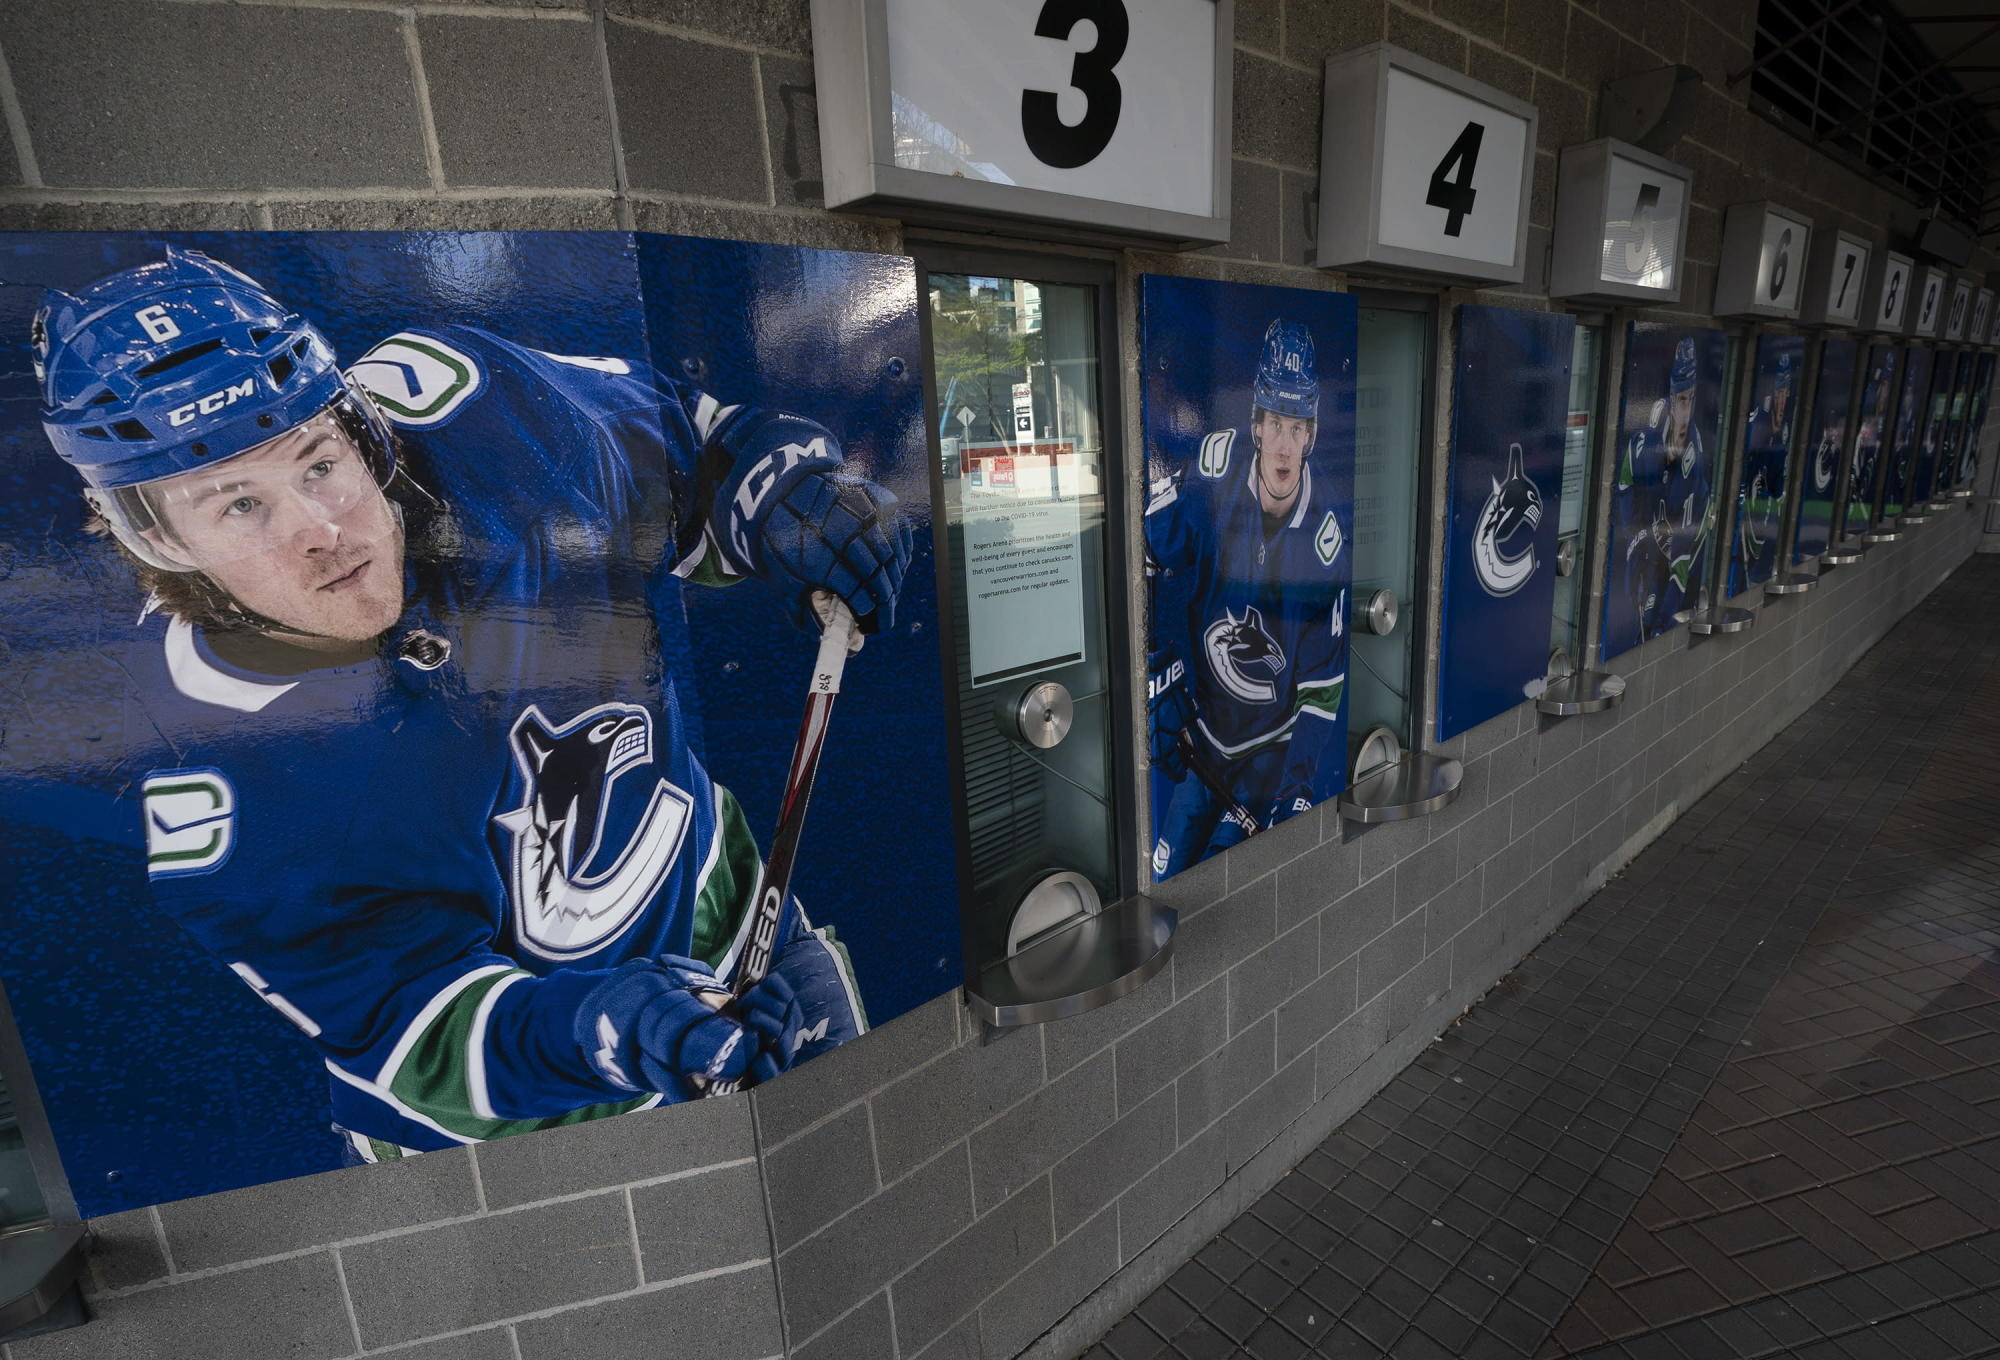 Virus-battered Canucks aim to complete condensed season